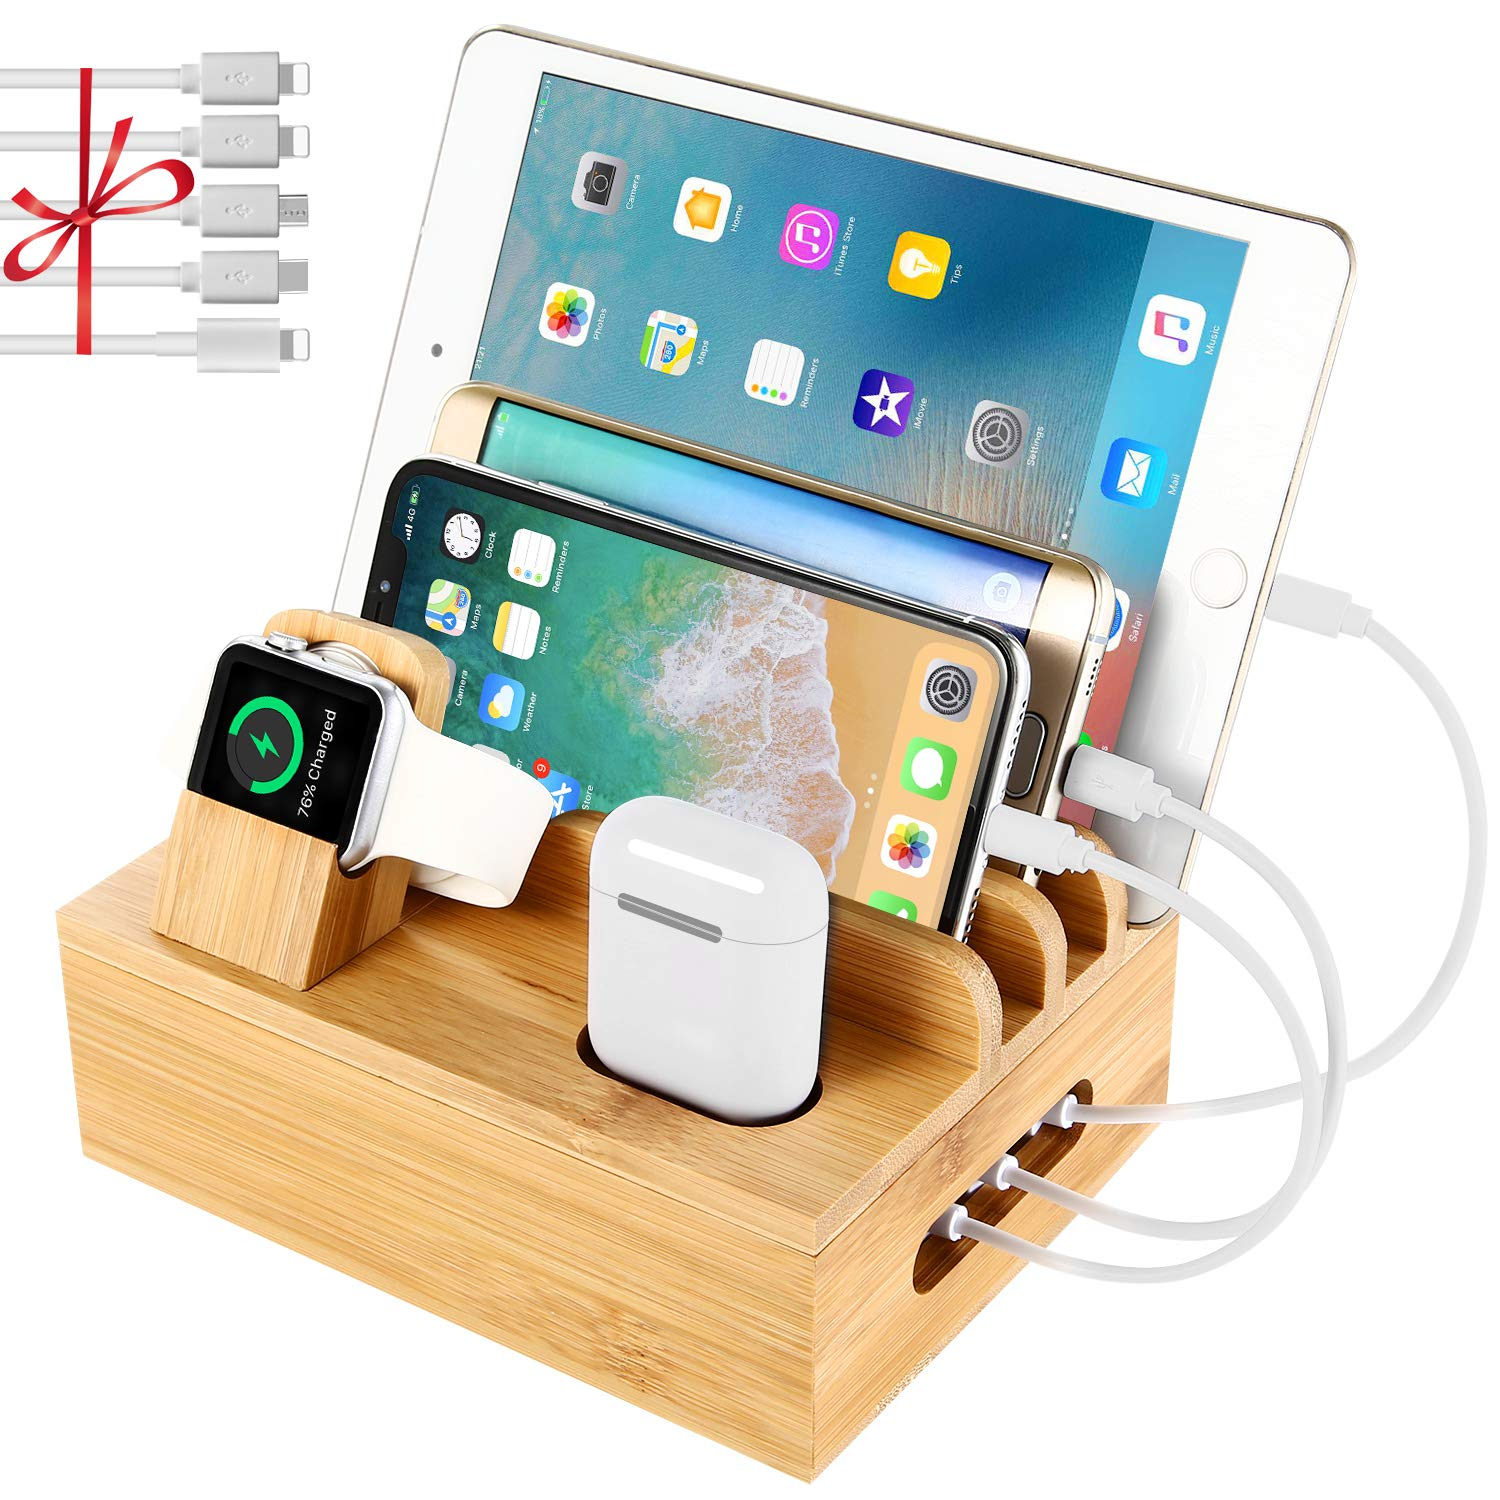 Bamboo Charging Station Dock